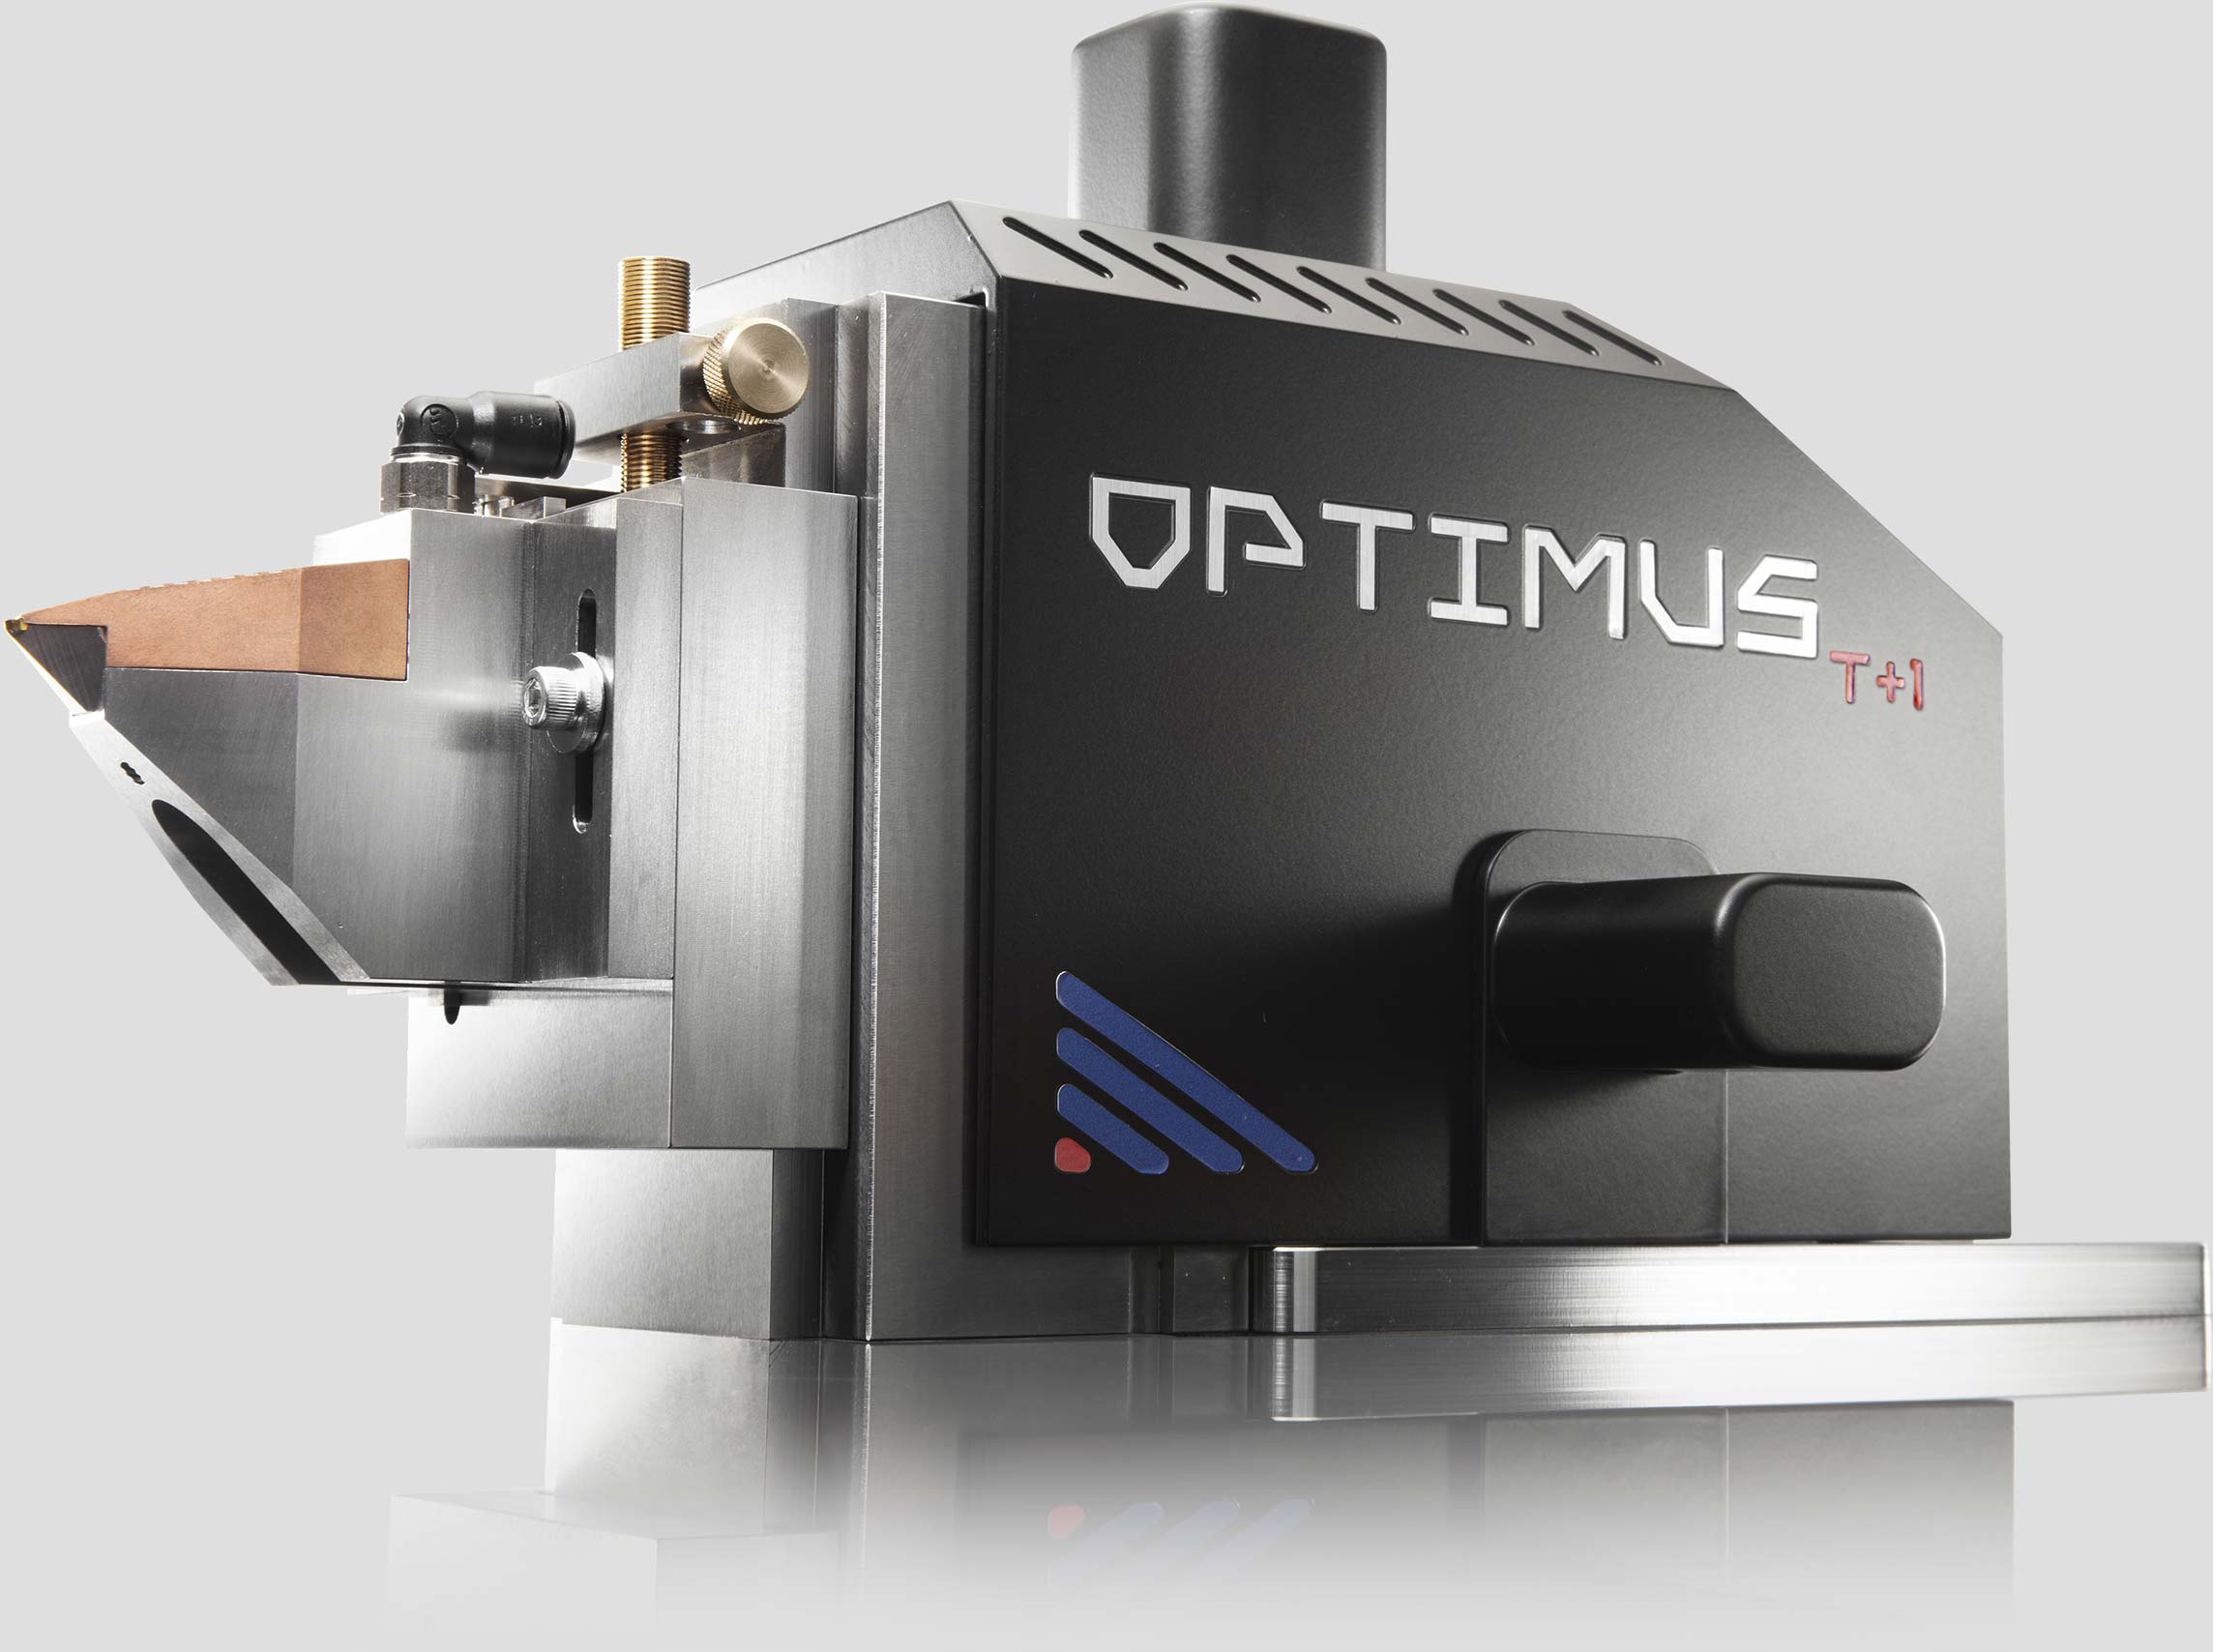 MICRO-LAM Optimus T+1 - Laser Assisted Tool